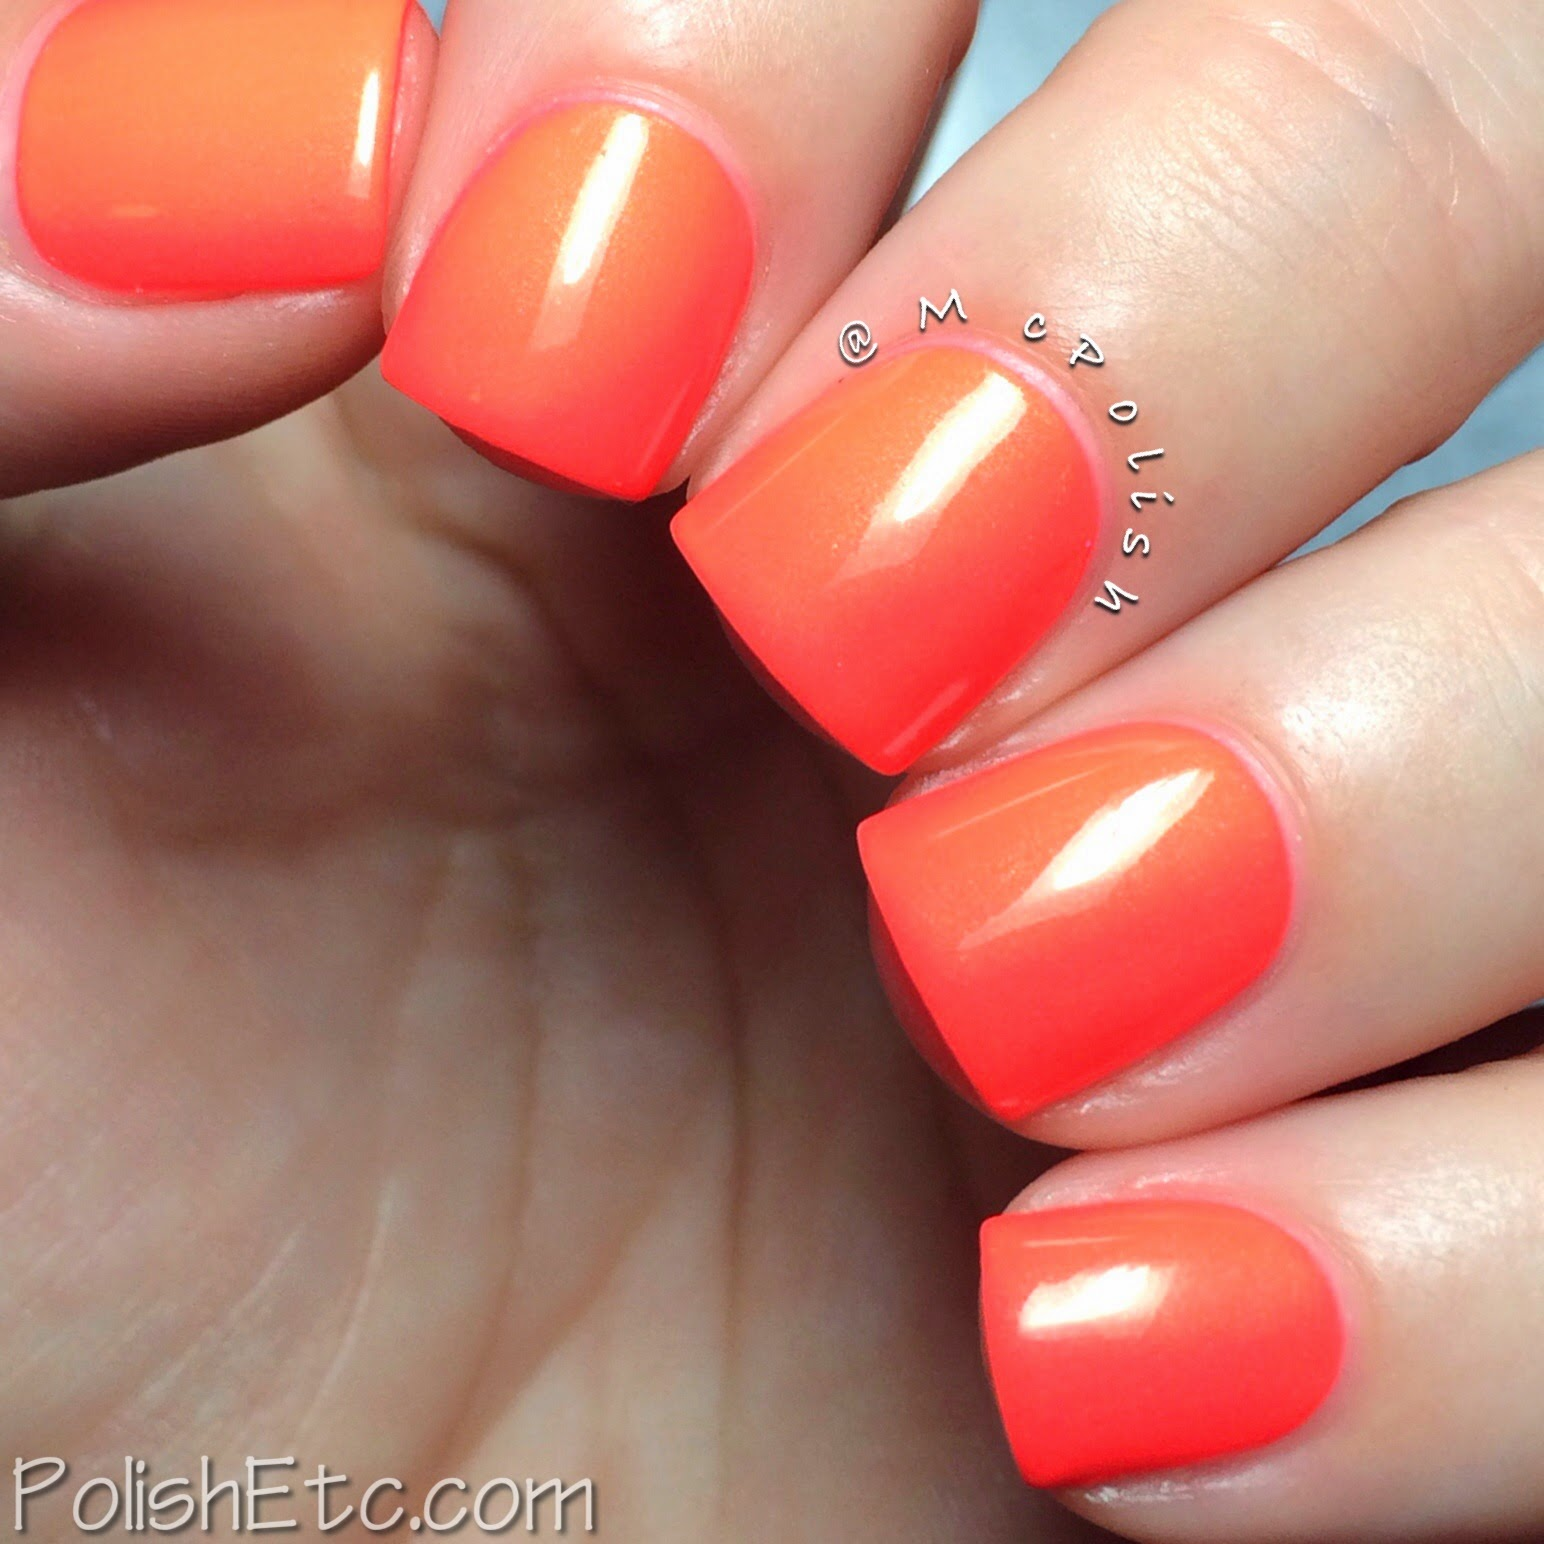 Pipe Dream Polish - A Night in Vegas Neons - 110 Degrees